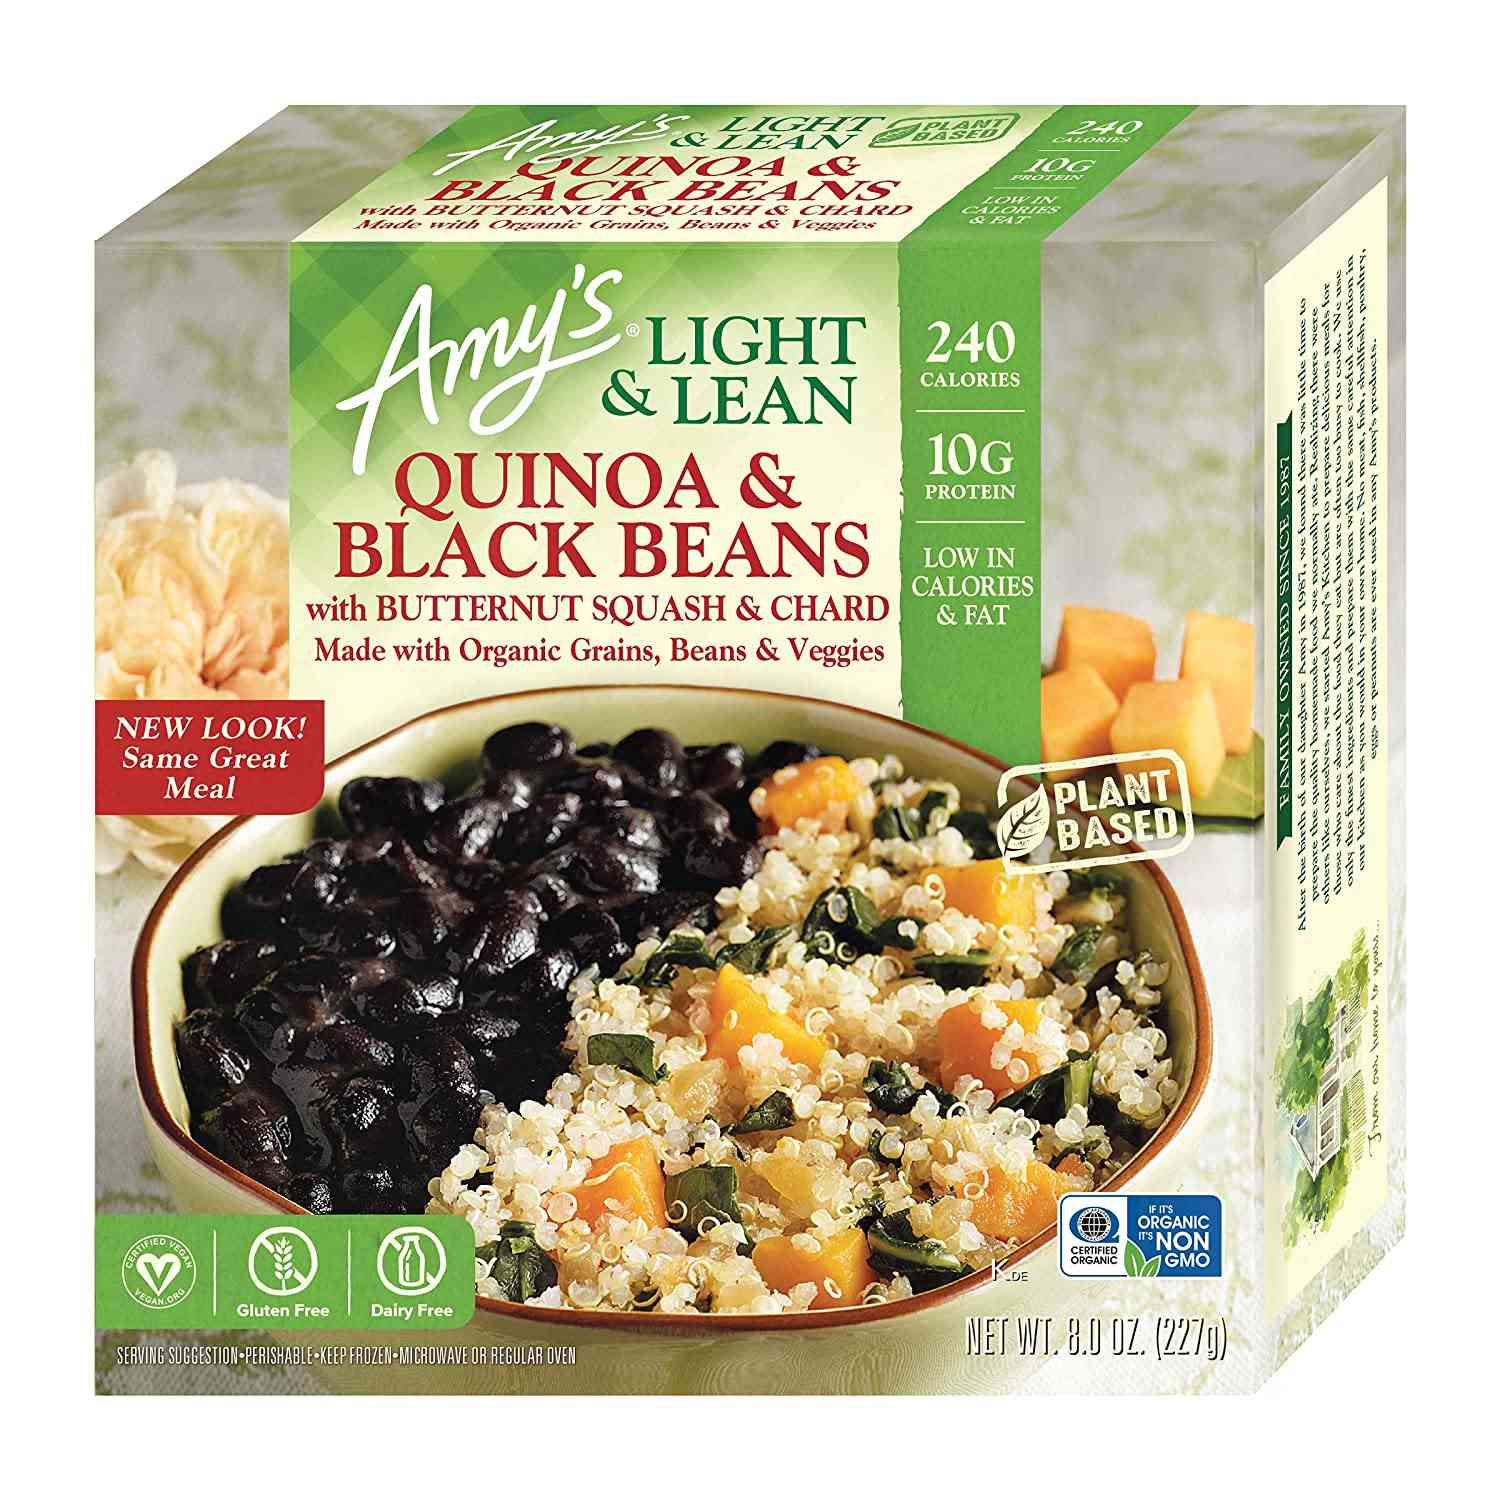 Amy's Light & Lean Quinoa and Black Beans with Butternut Squash & Chard Bowl